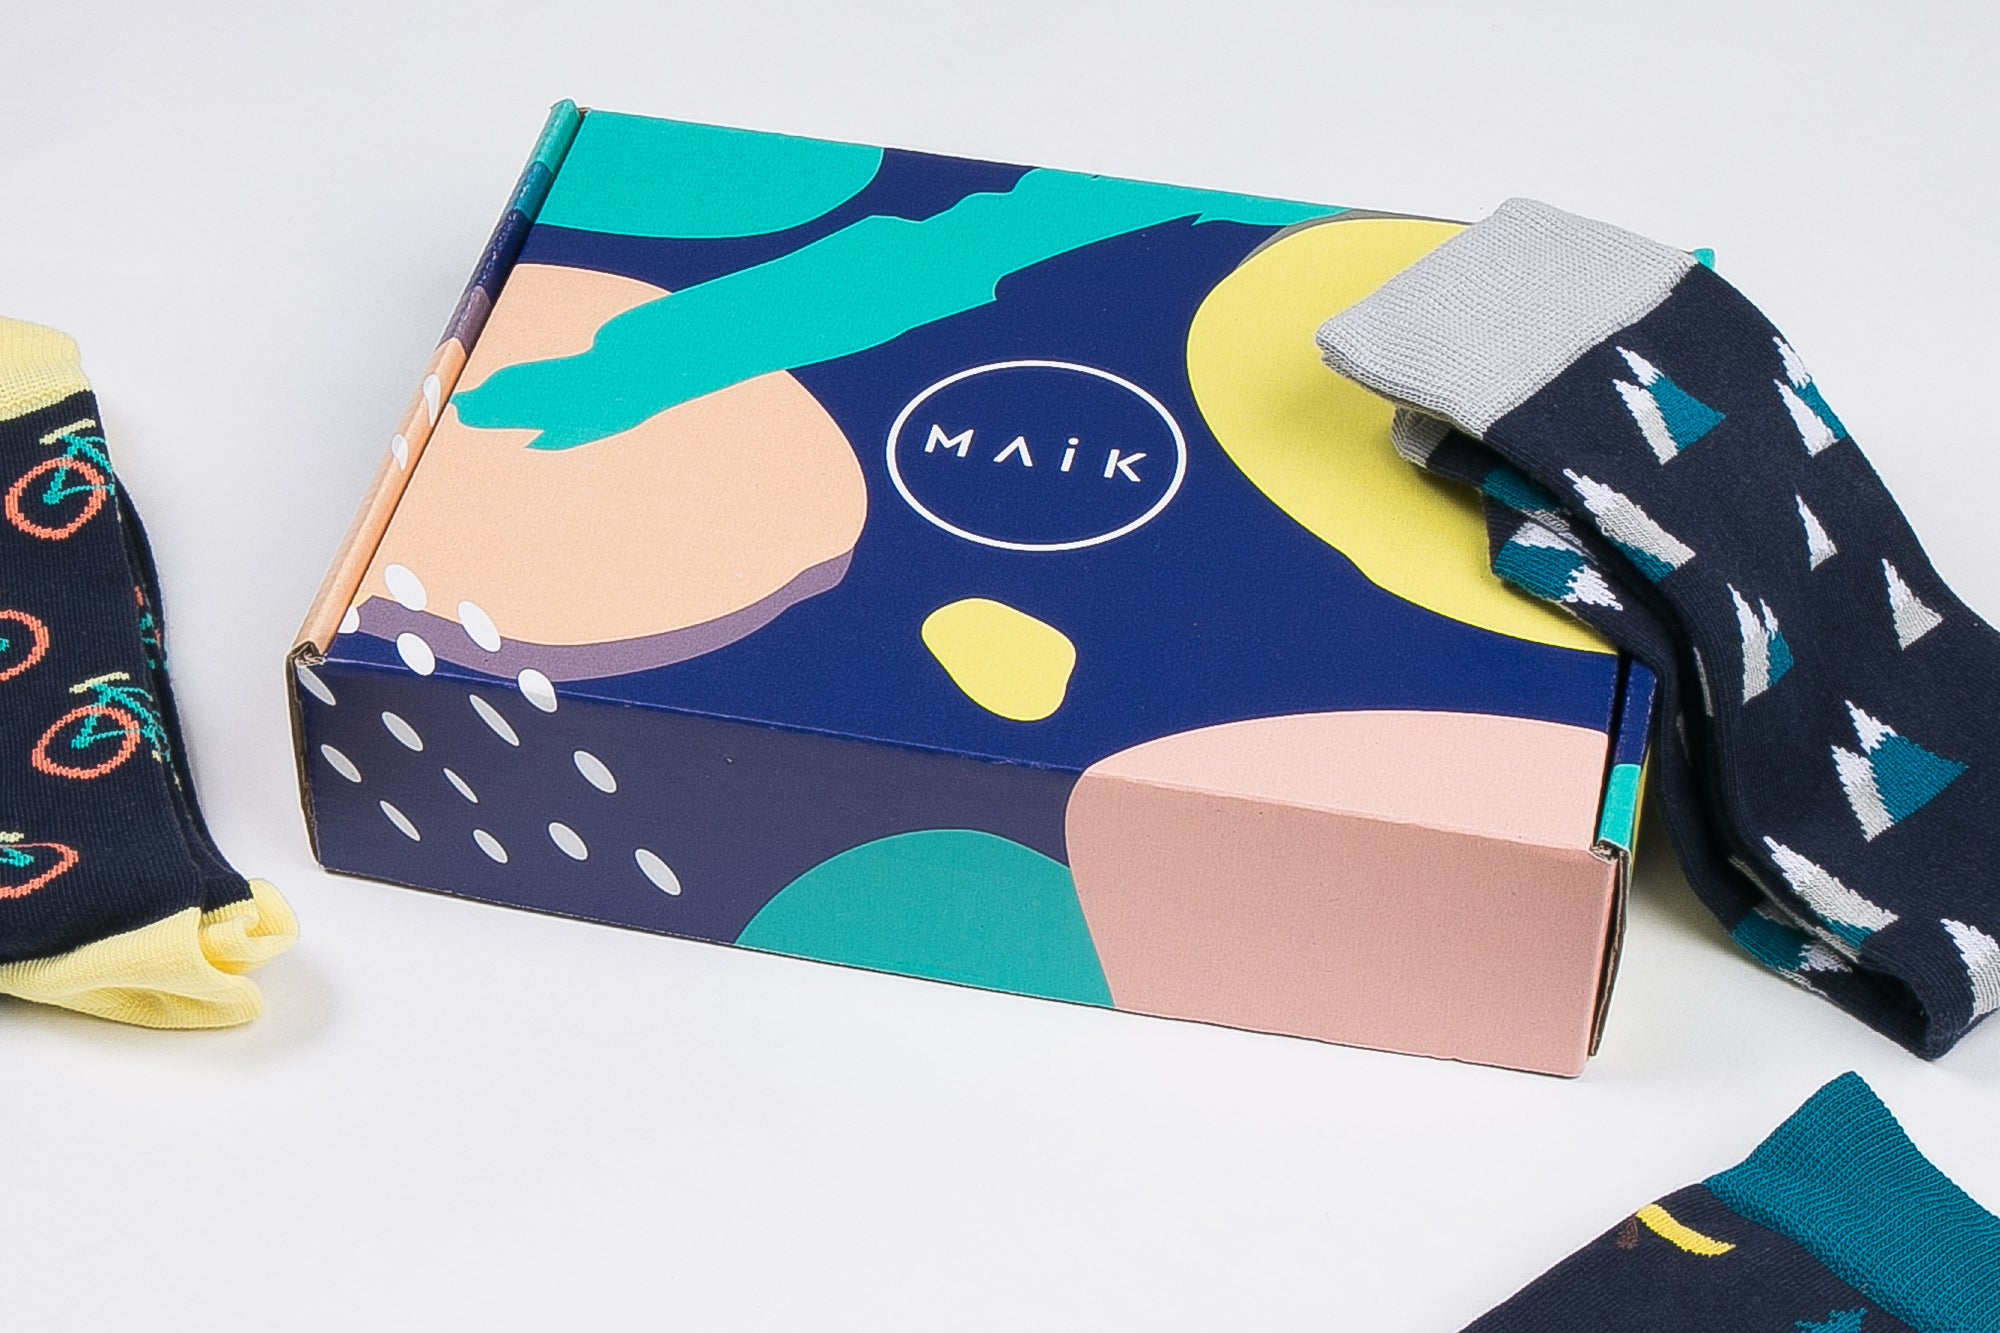 Say hello to the MAiK Sock Box!